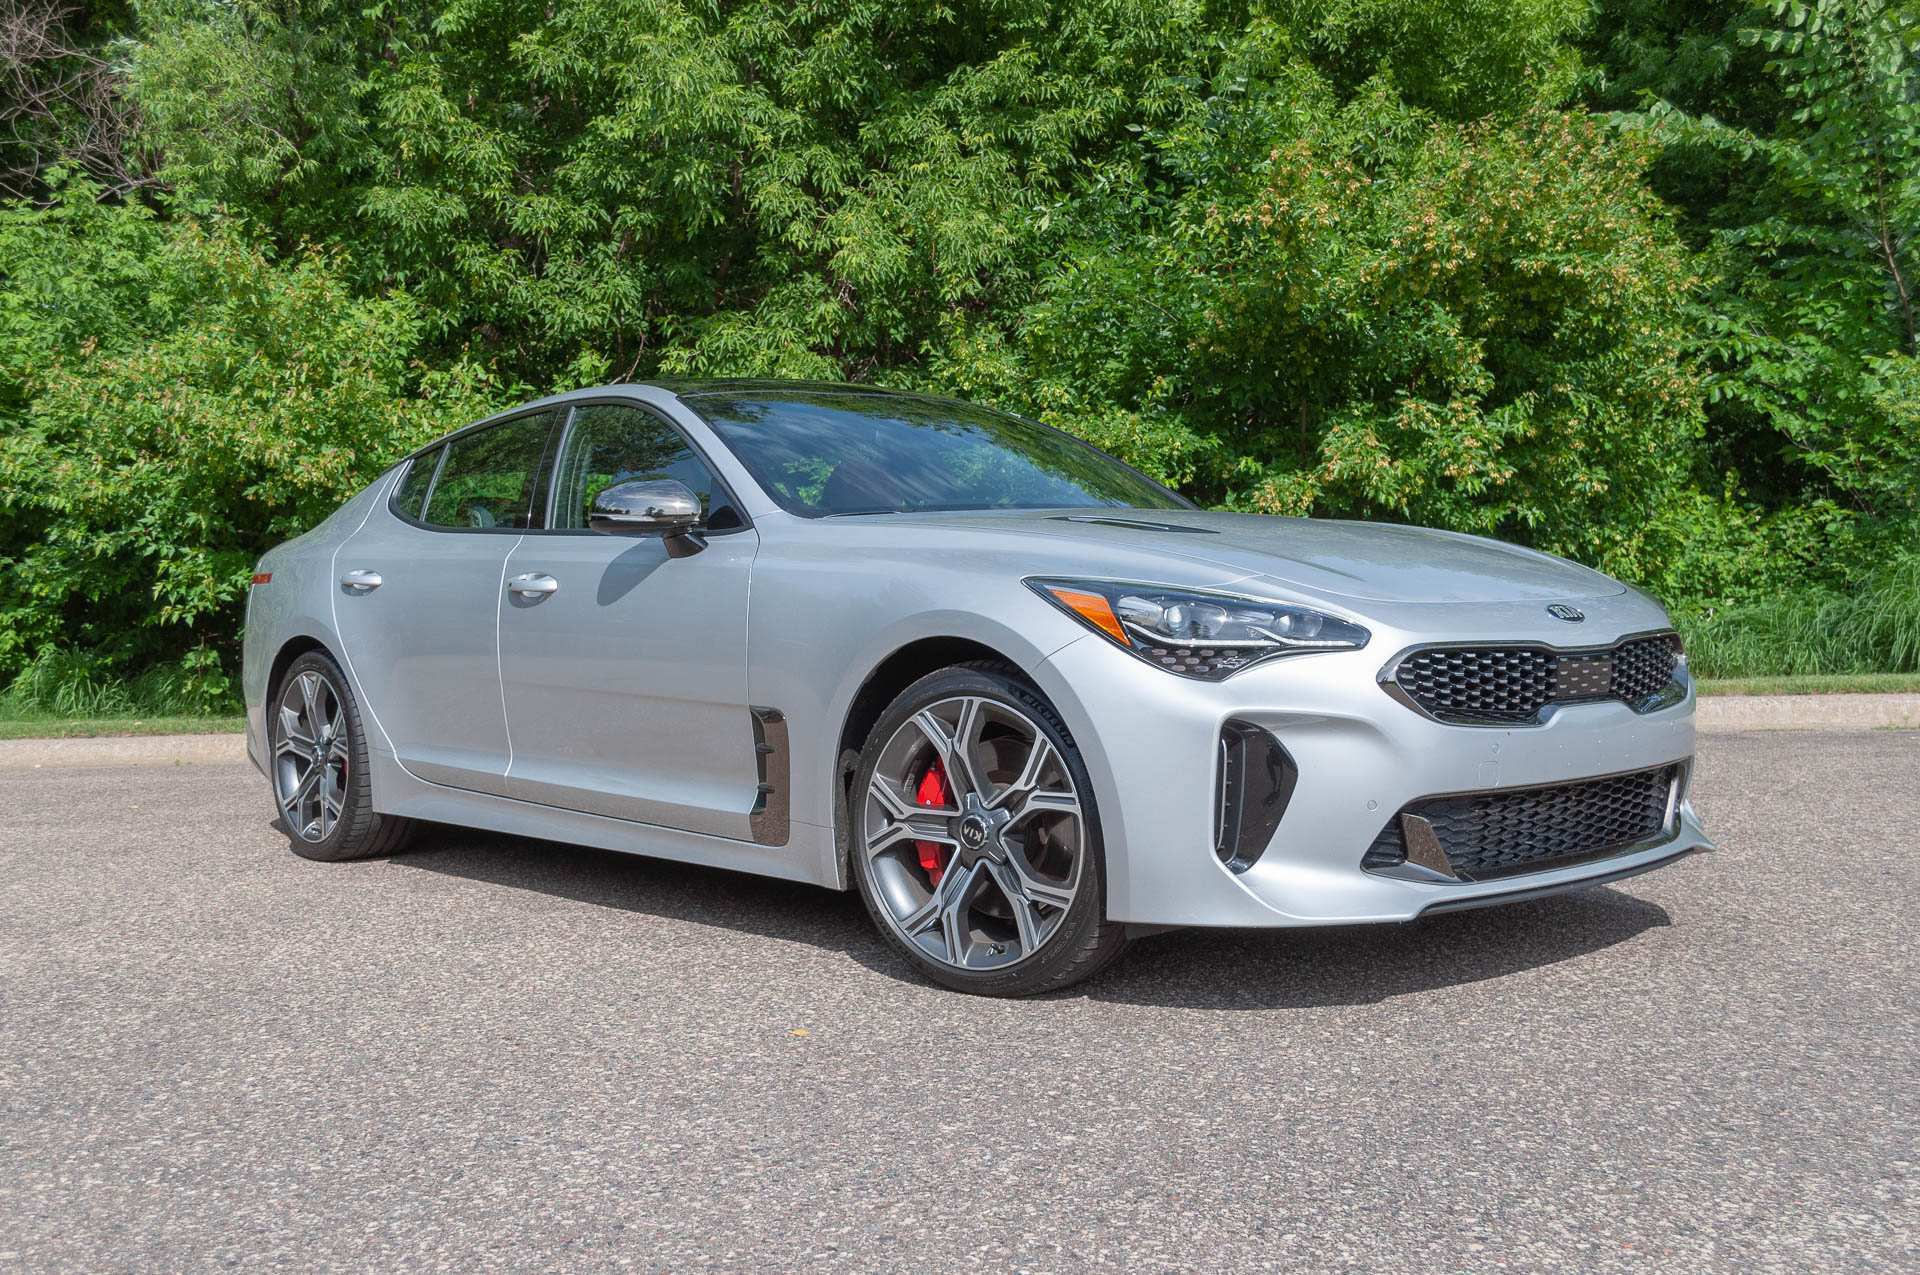 46 All New 2019 Kia Stinger Gt2 Spy Shoot with 2019 Kia Stinger Gt2